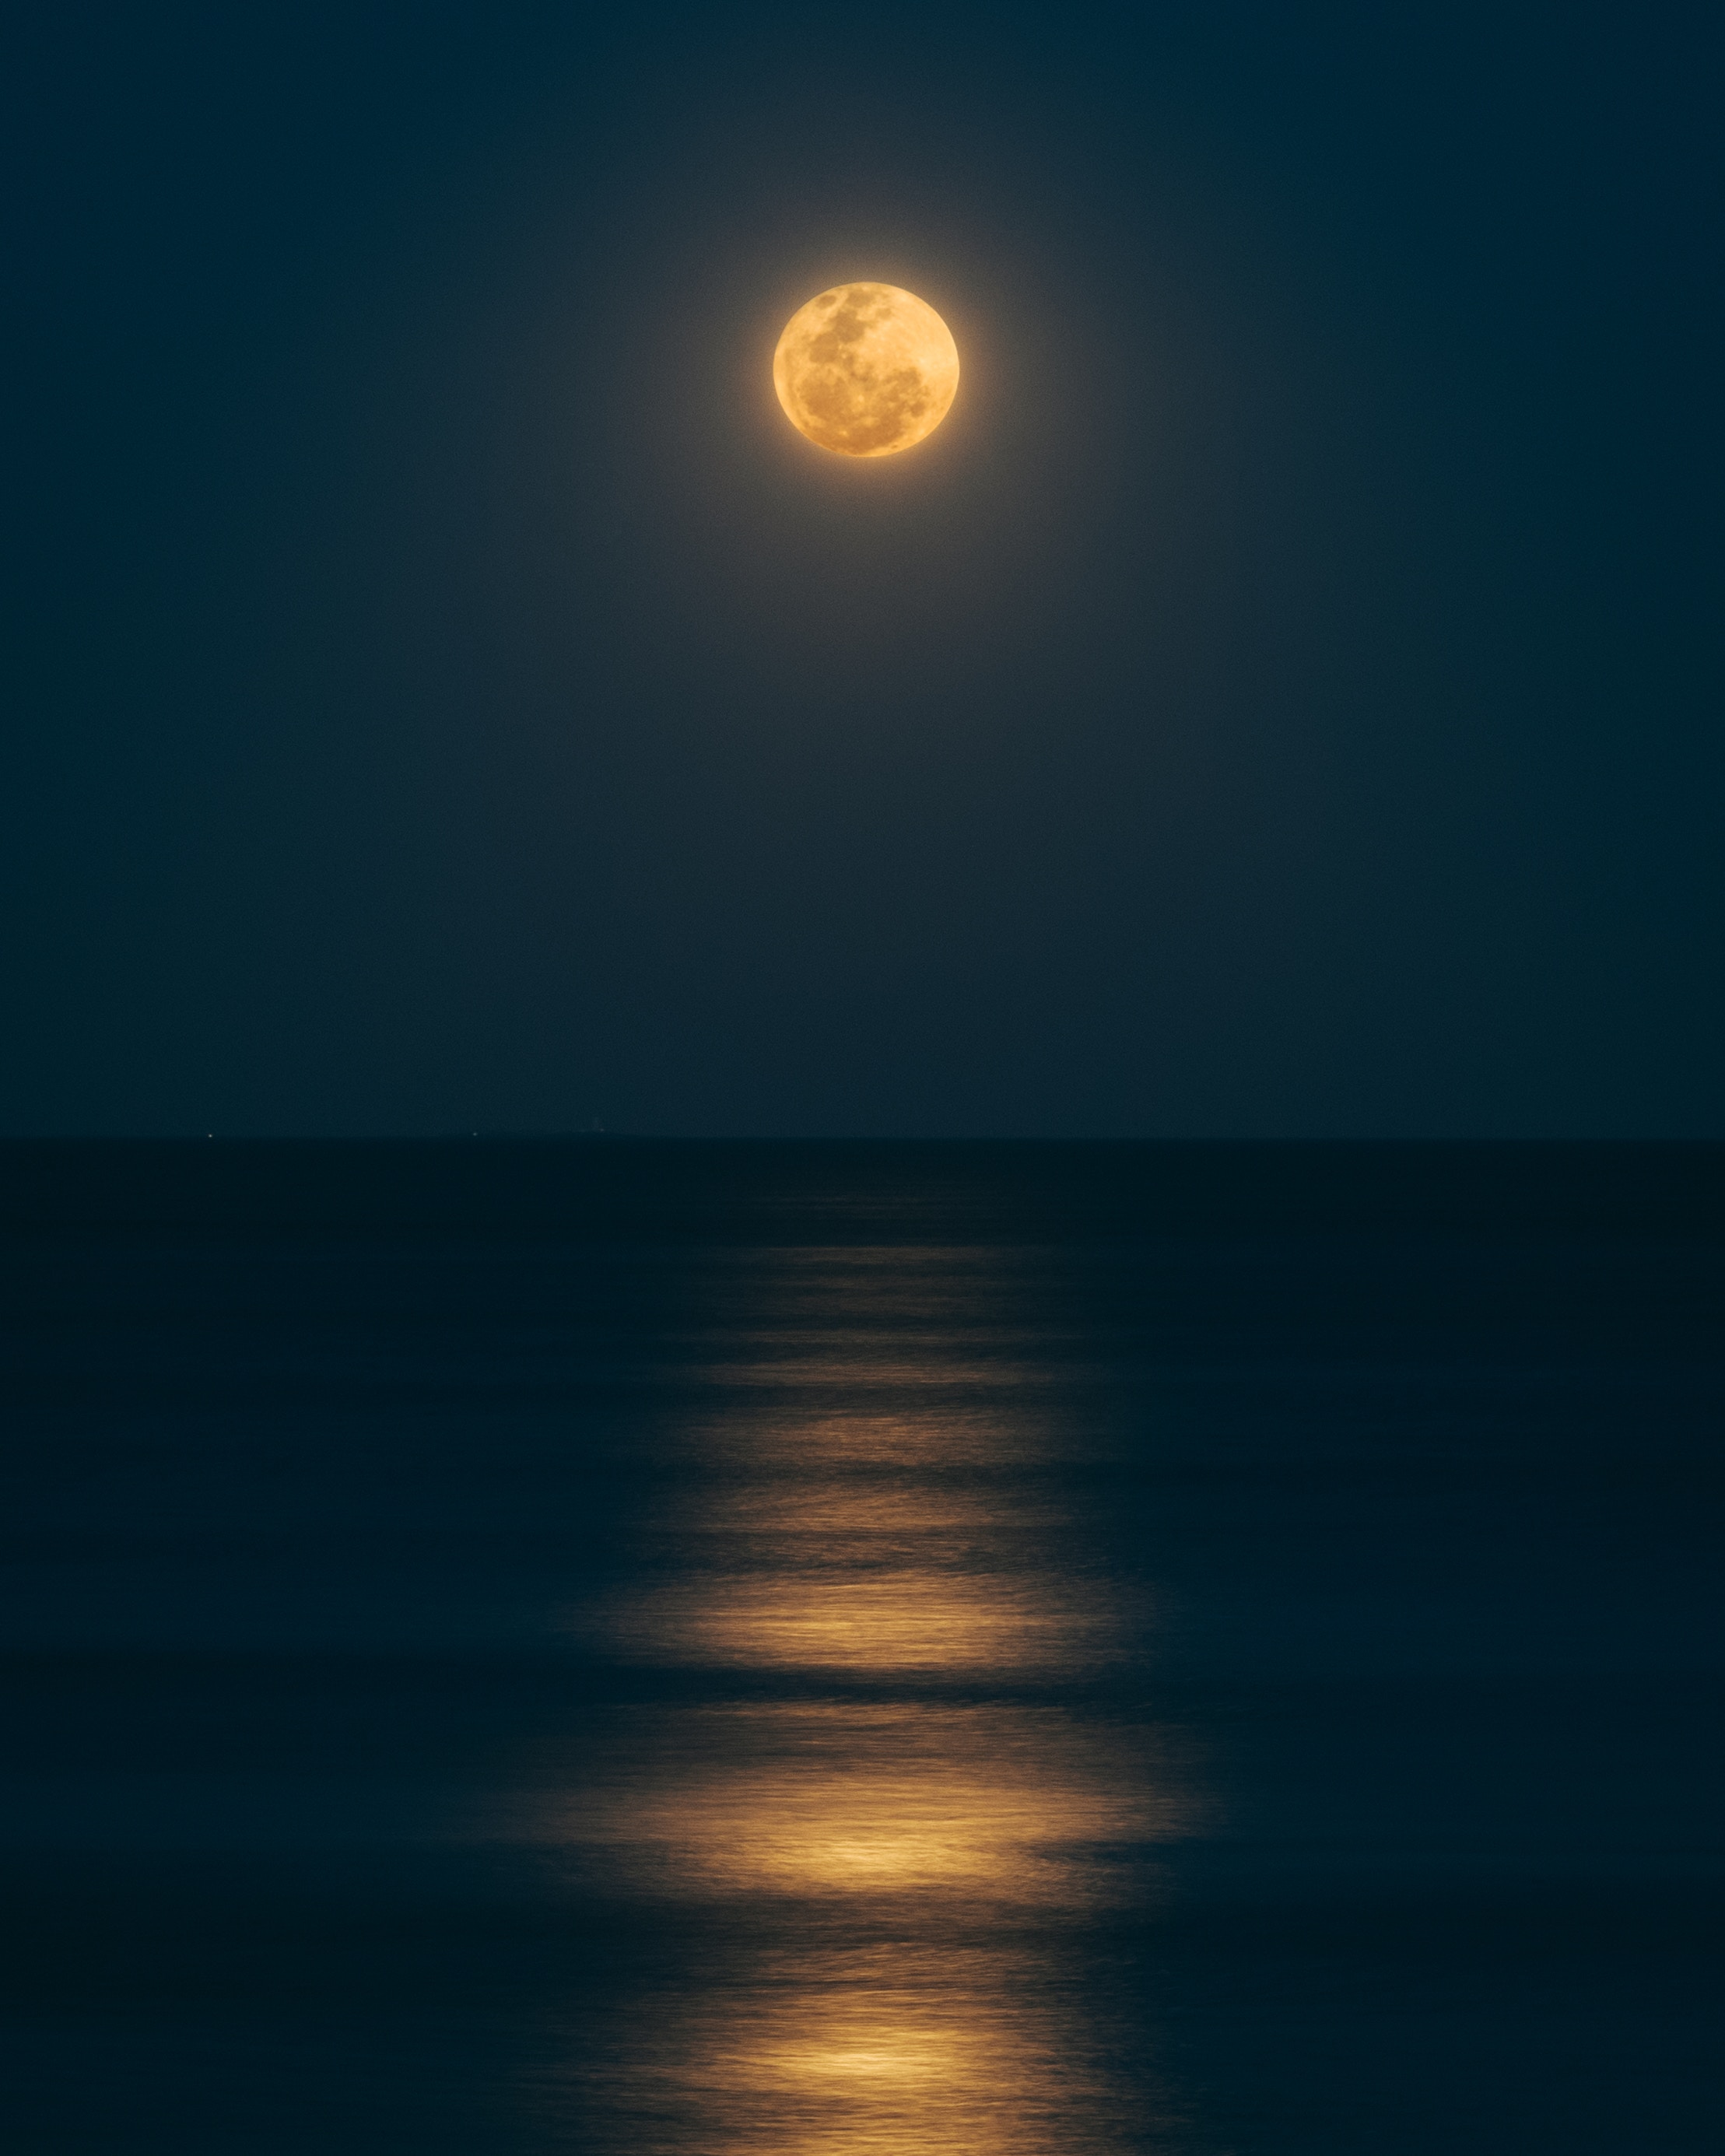 How To Work With The Full Moon